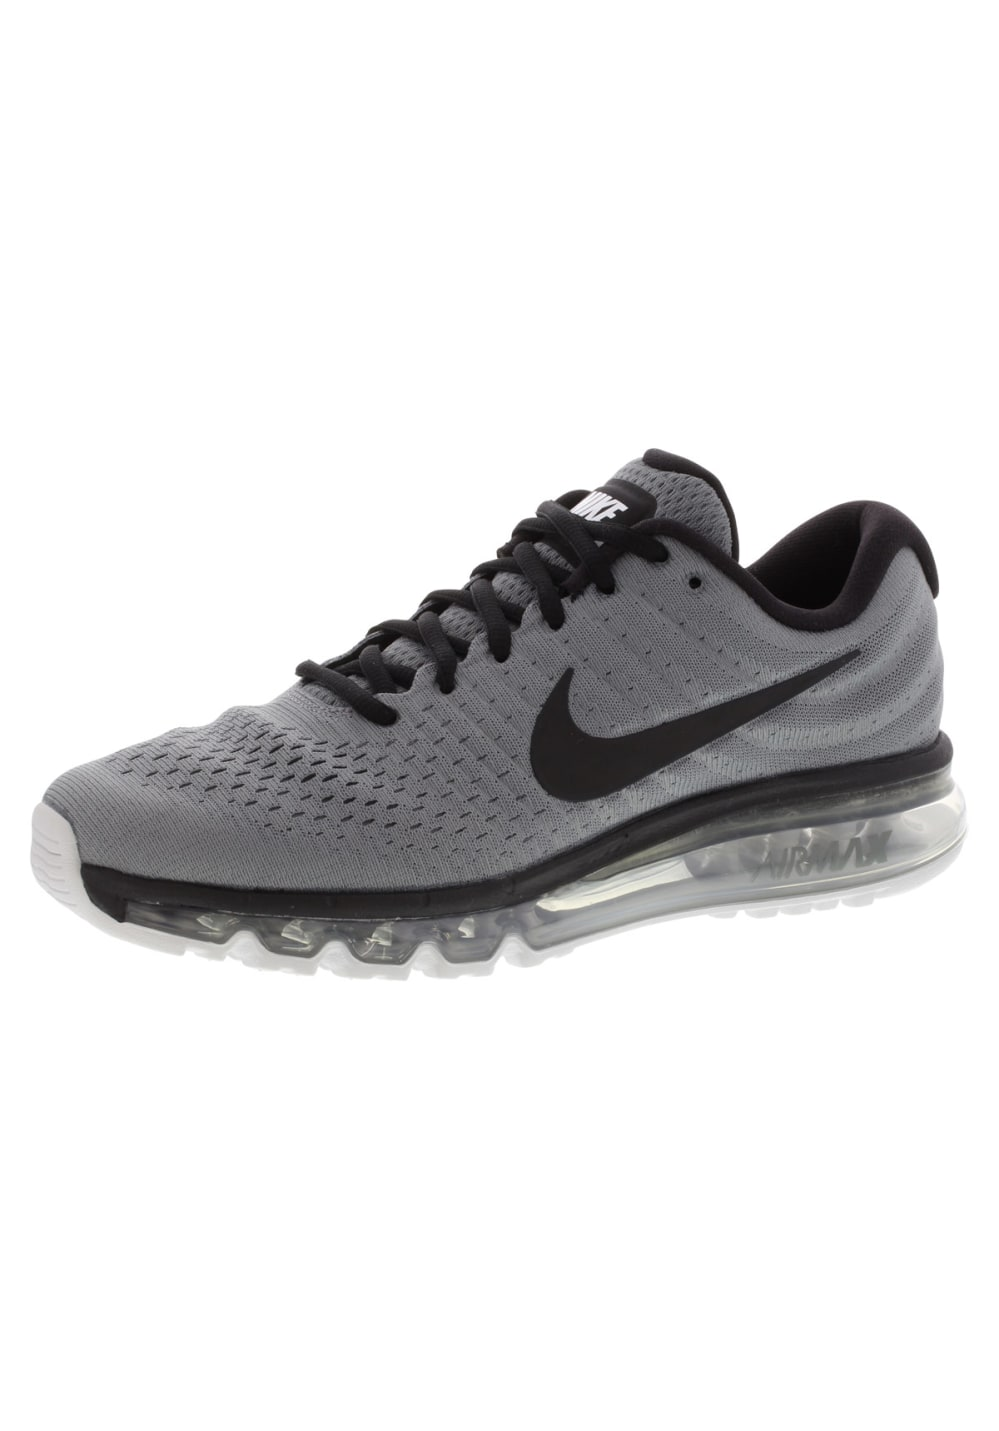 Homme Gris Chaussures Pour Air Nike 2017 Max Running rhQCsdxt